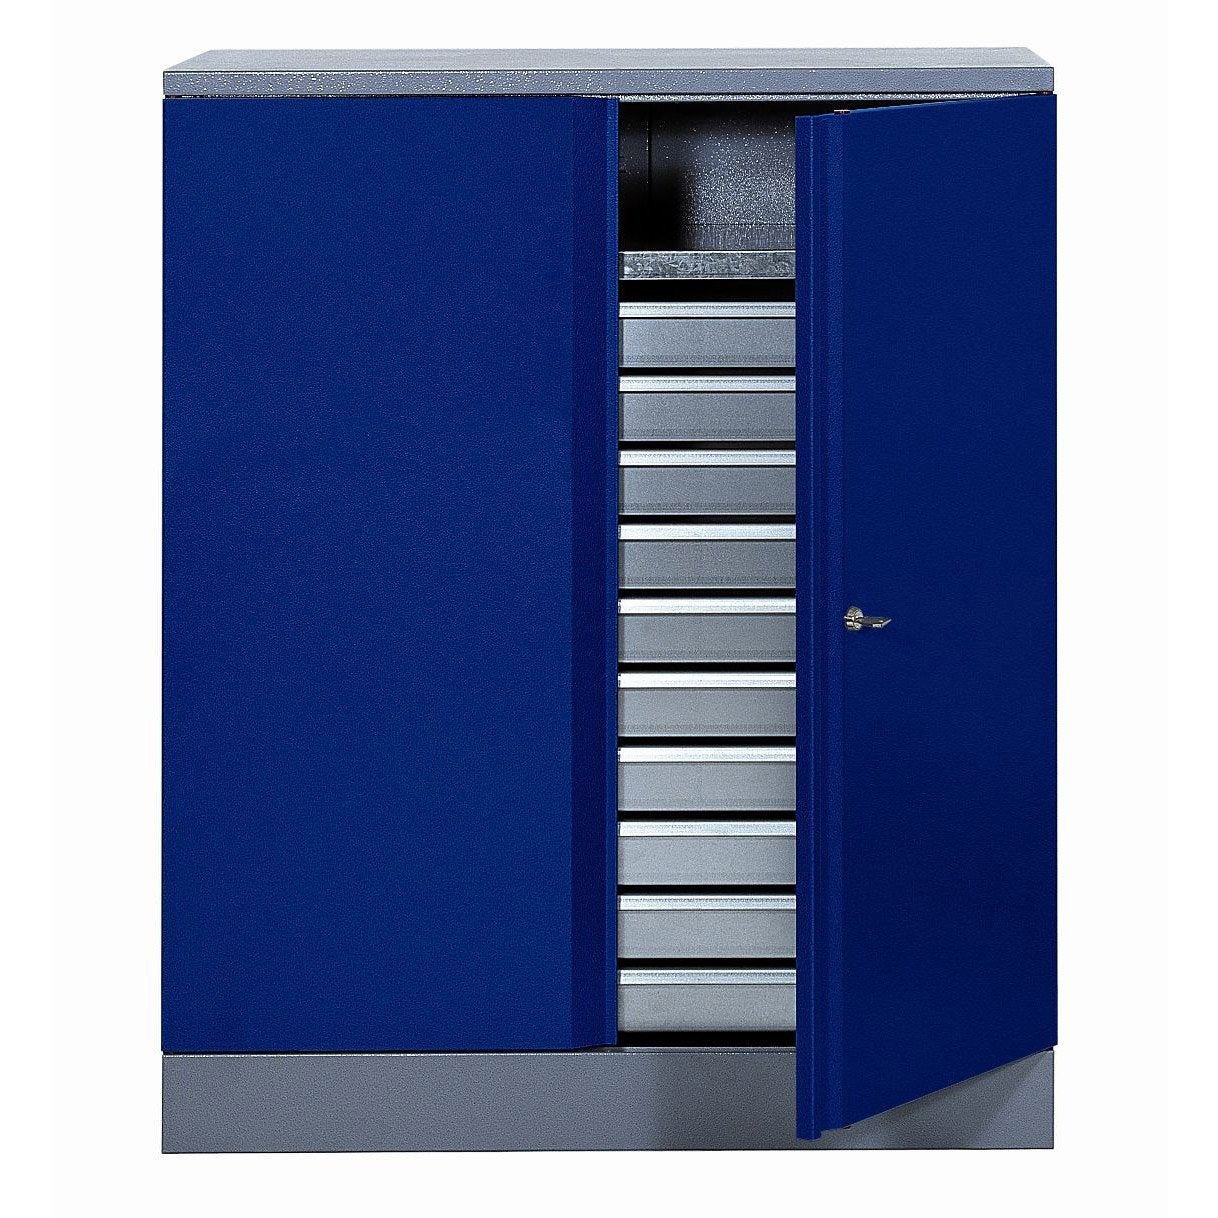 armoire de rangement en m tal bleu kupper 91 cm 1 porte 10. Black Bedroom Furniture Sets. Home Design Ideas